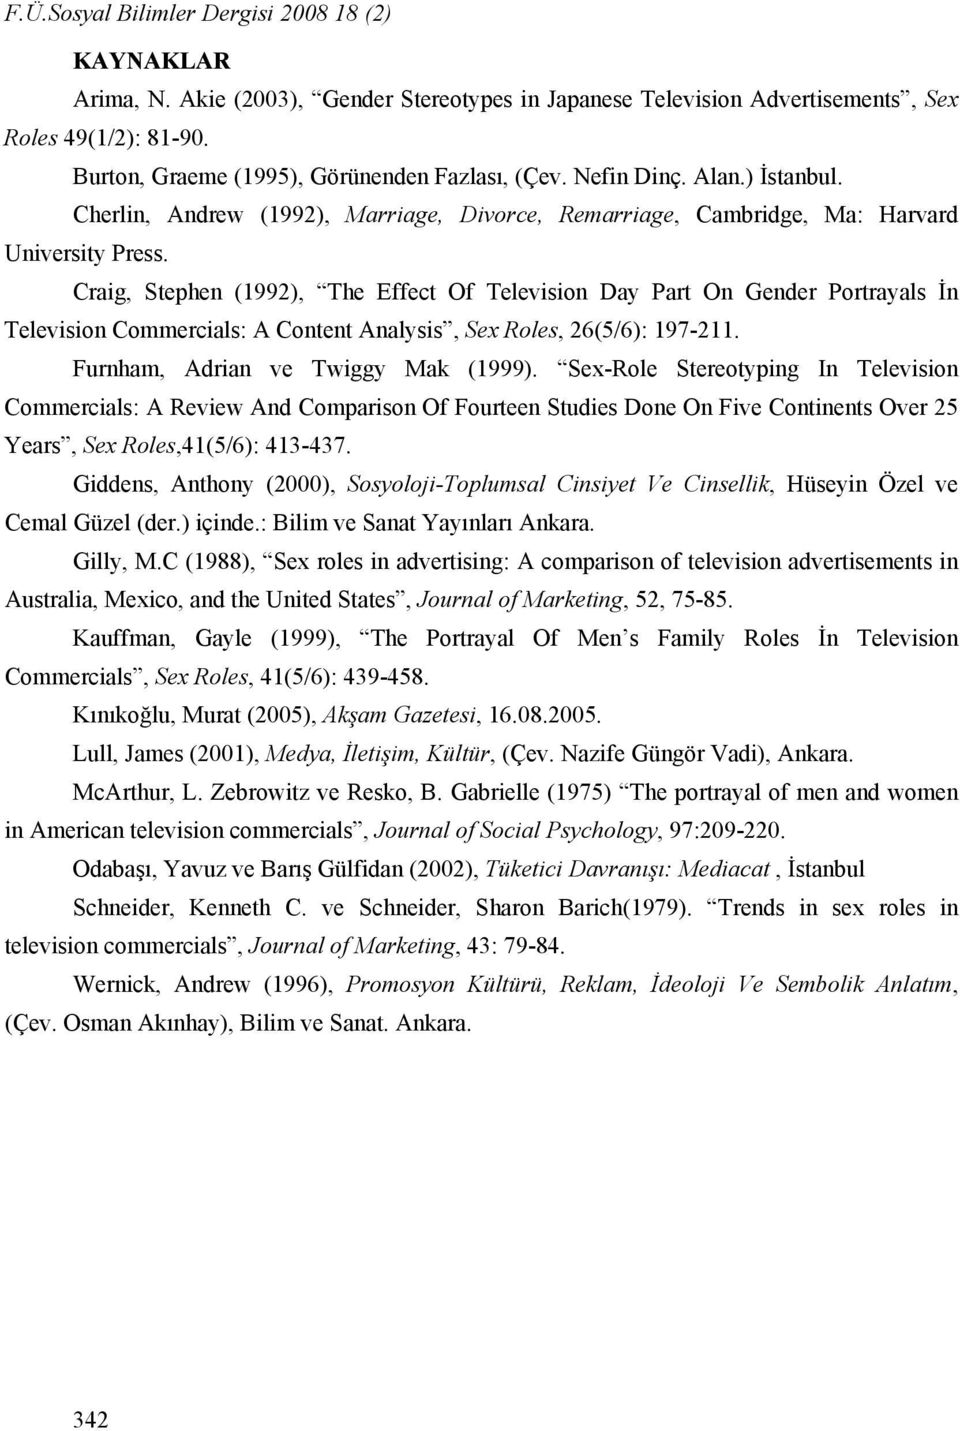 Craig, Stephen (1992), The Effect Of Television Day Part On Gender Portrayals İn Television Commercials: A Content Analysis, Sex Roles, 26(5/6): 197-211. Furnham, Adrian ve Twiggy Mak (1999).